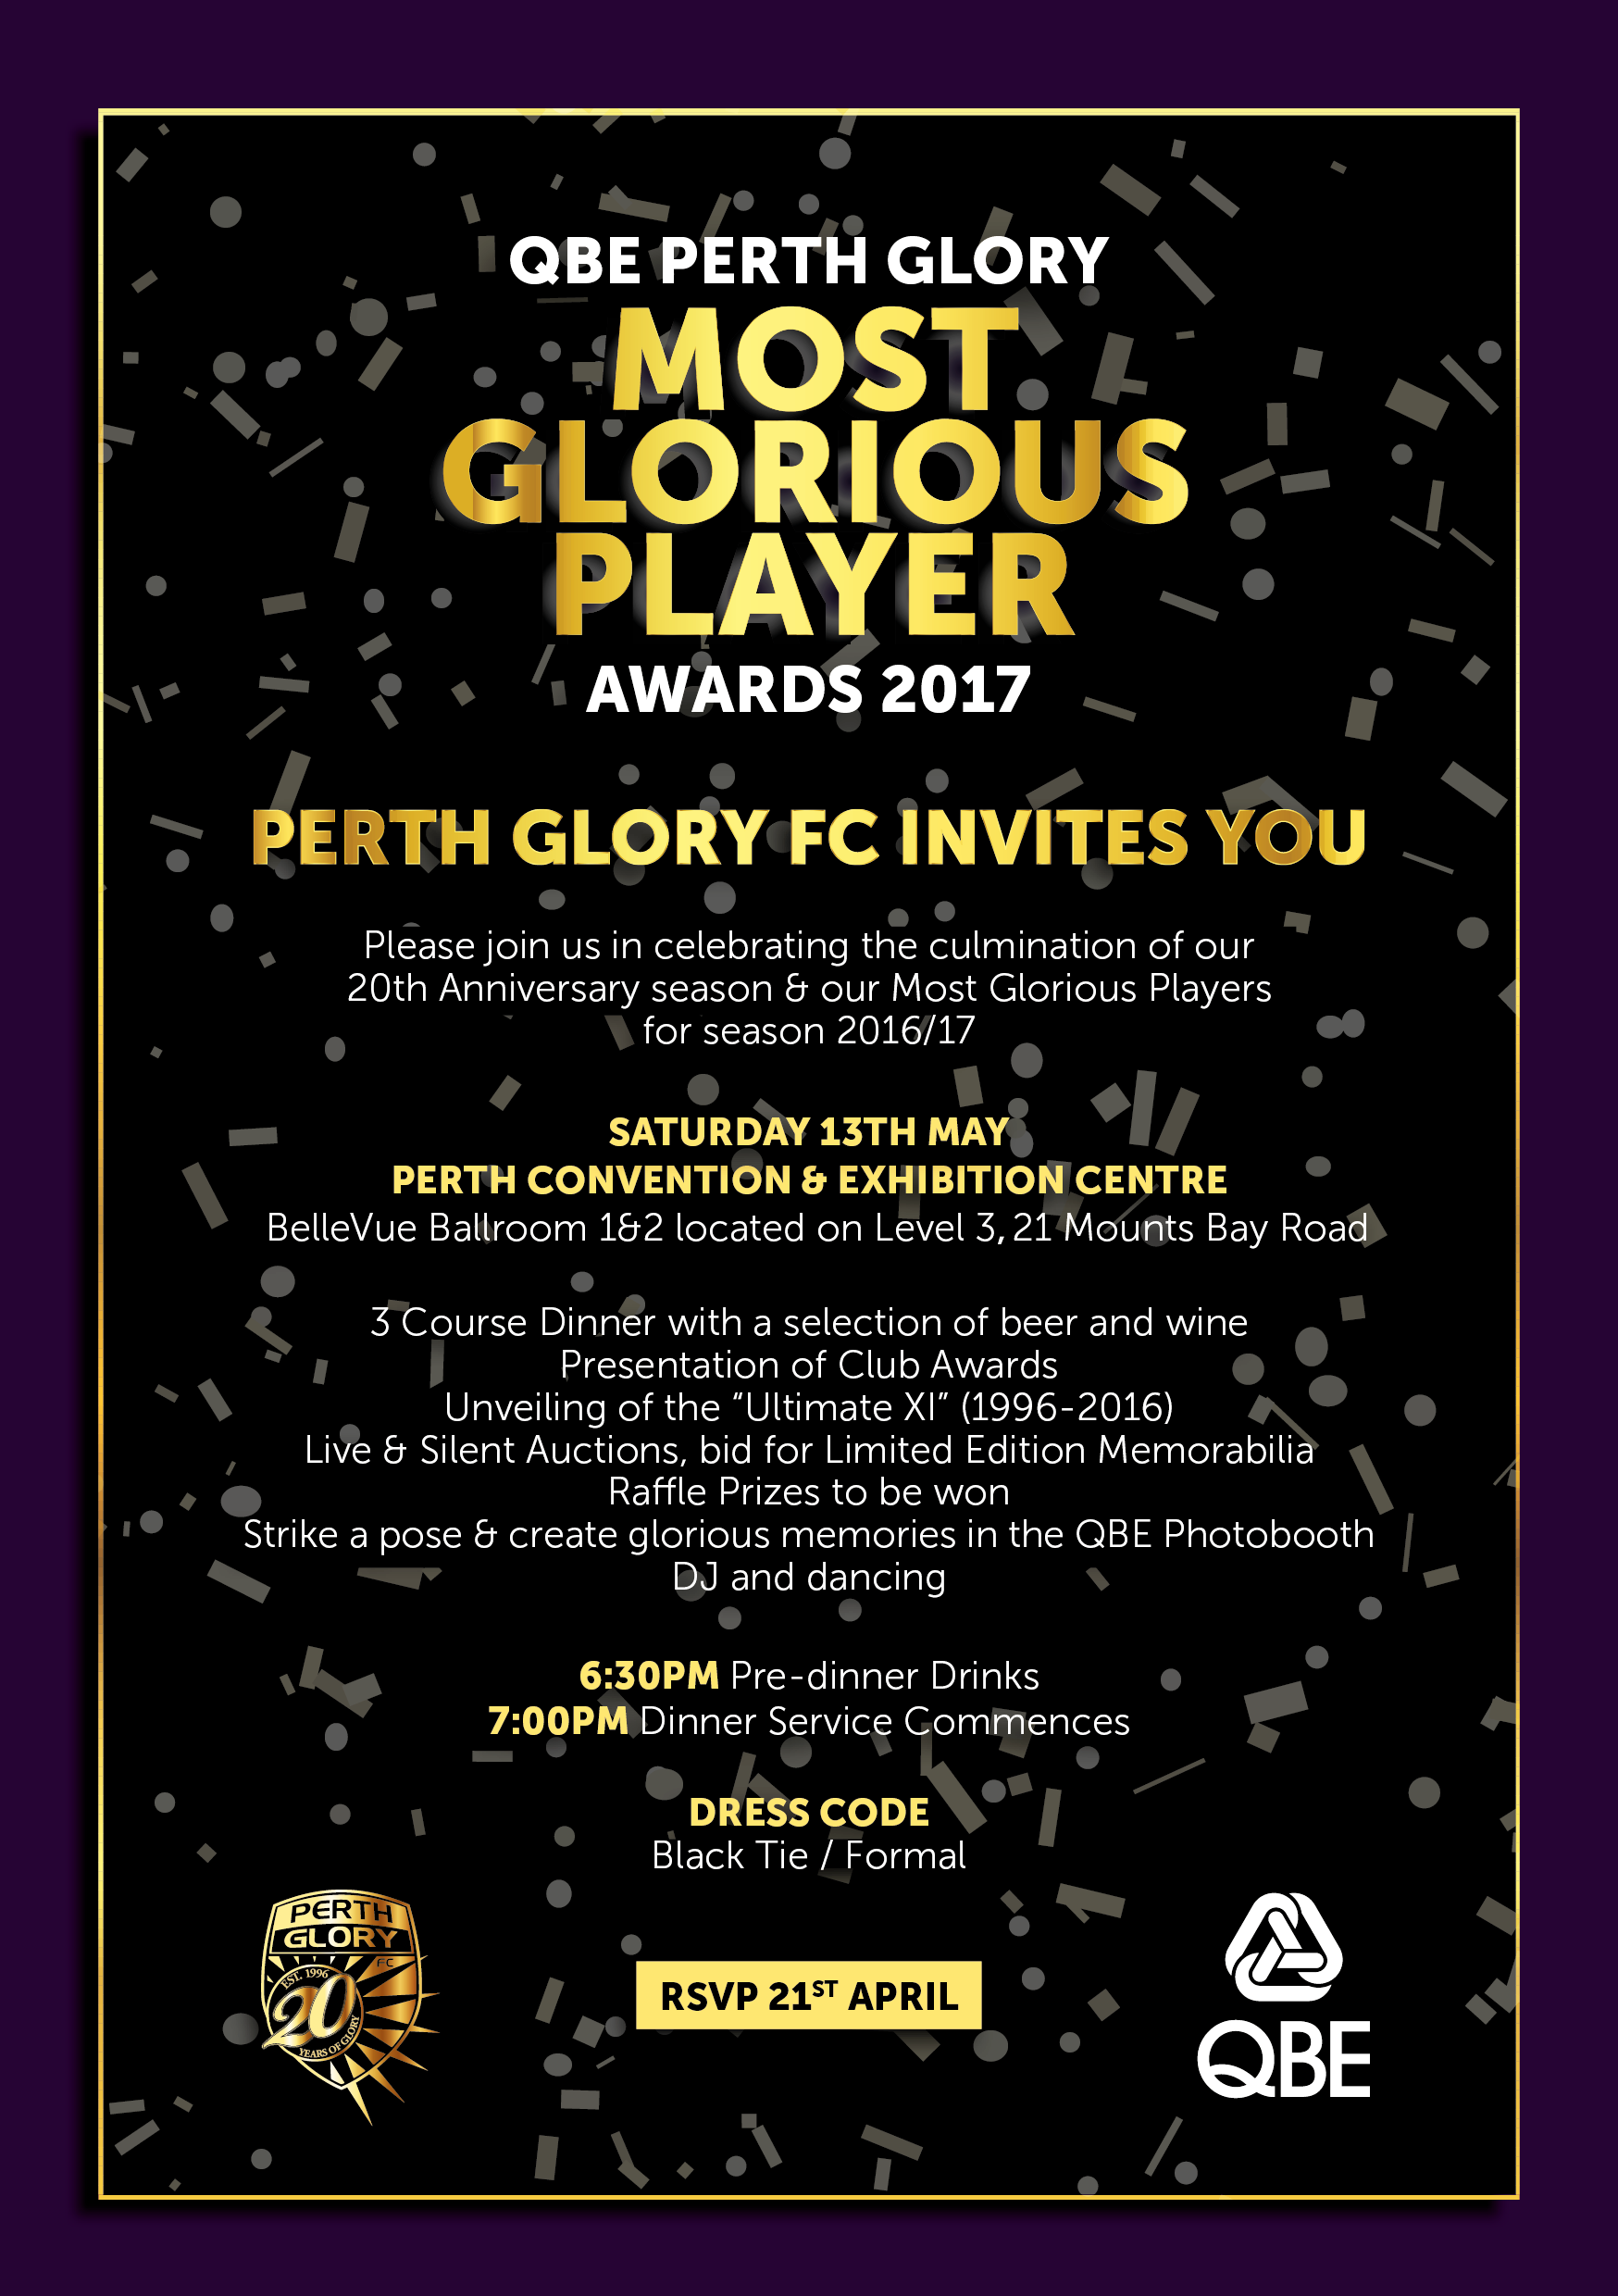 QBE PERTH GLORY MGP Invitation